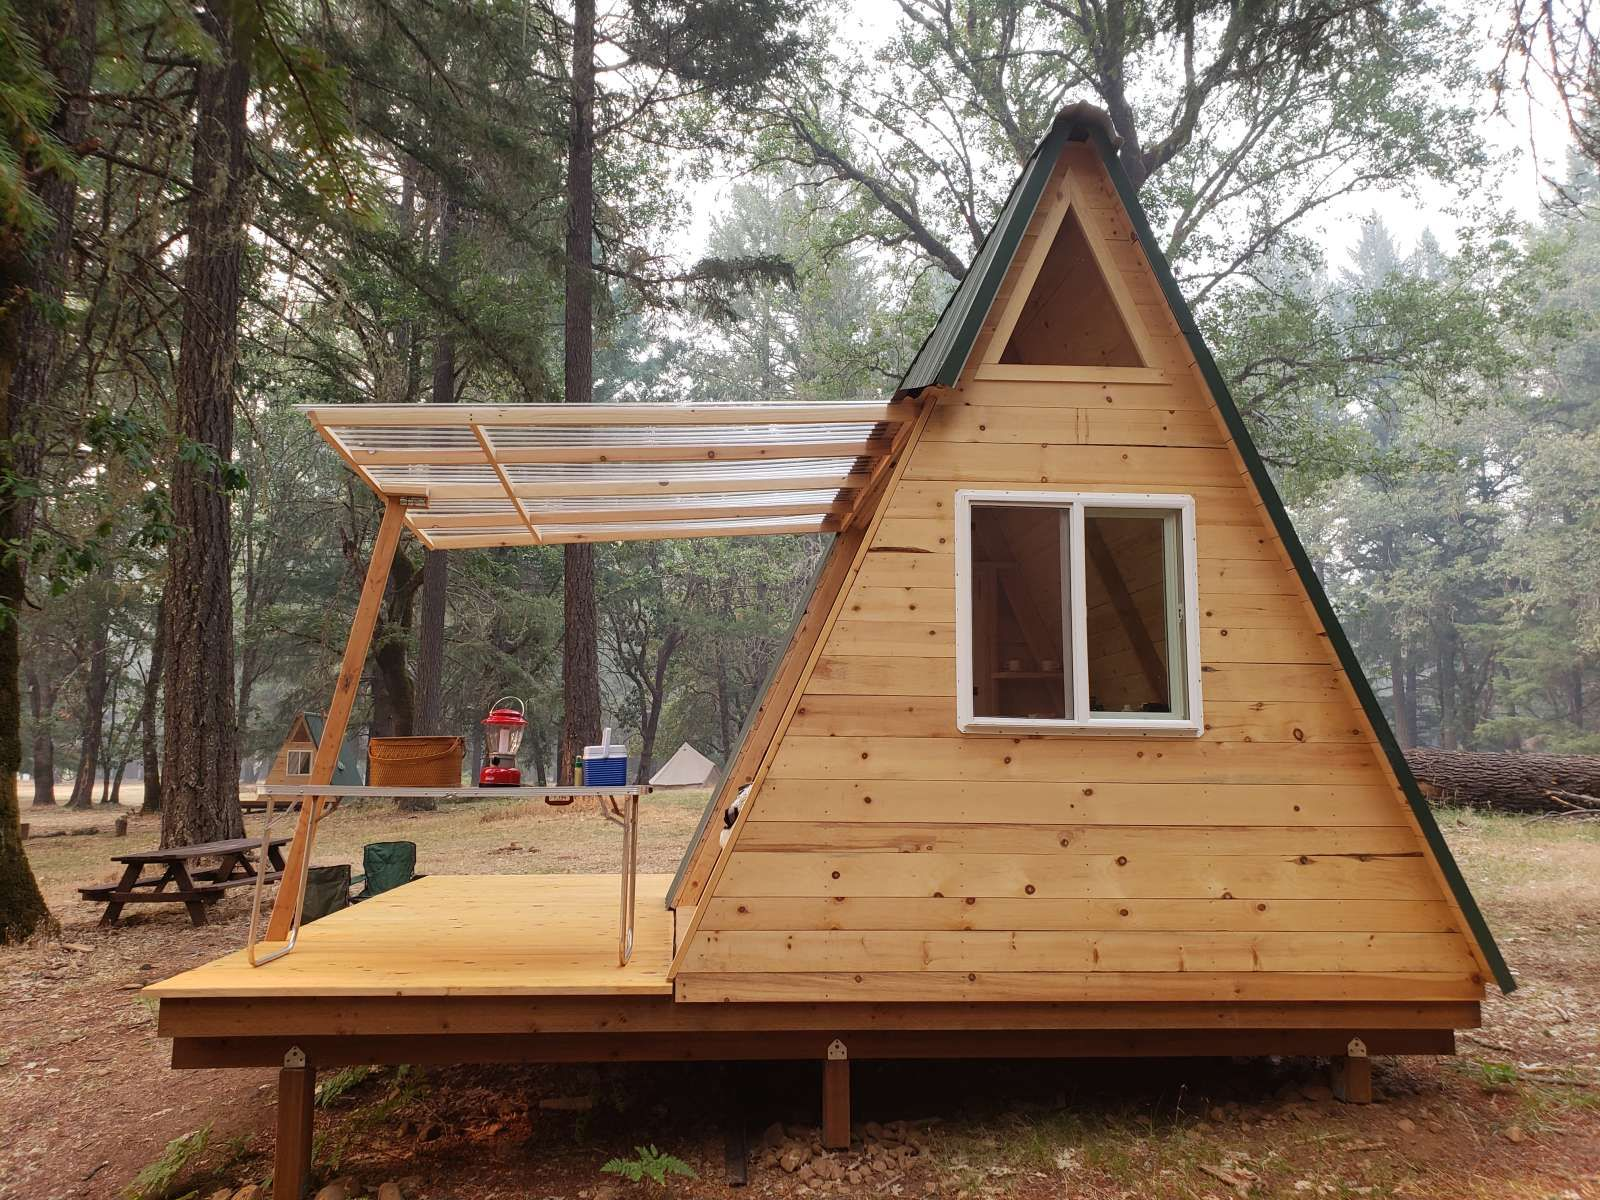 Star A Frame Tiny Cabin Cedar Bloom Or 56 Hipcamper Reviews And 77 Photos Tiny House Cabin Tiny Cabin A Frame Cabin